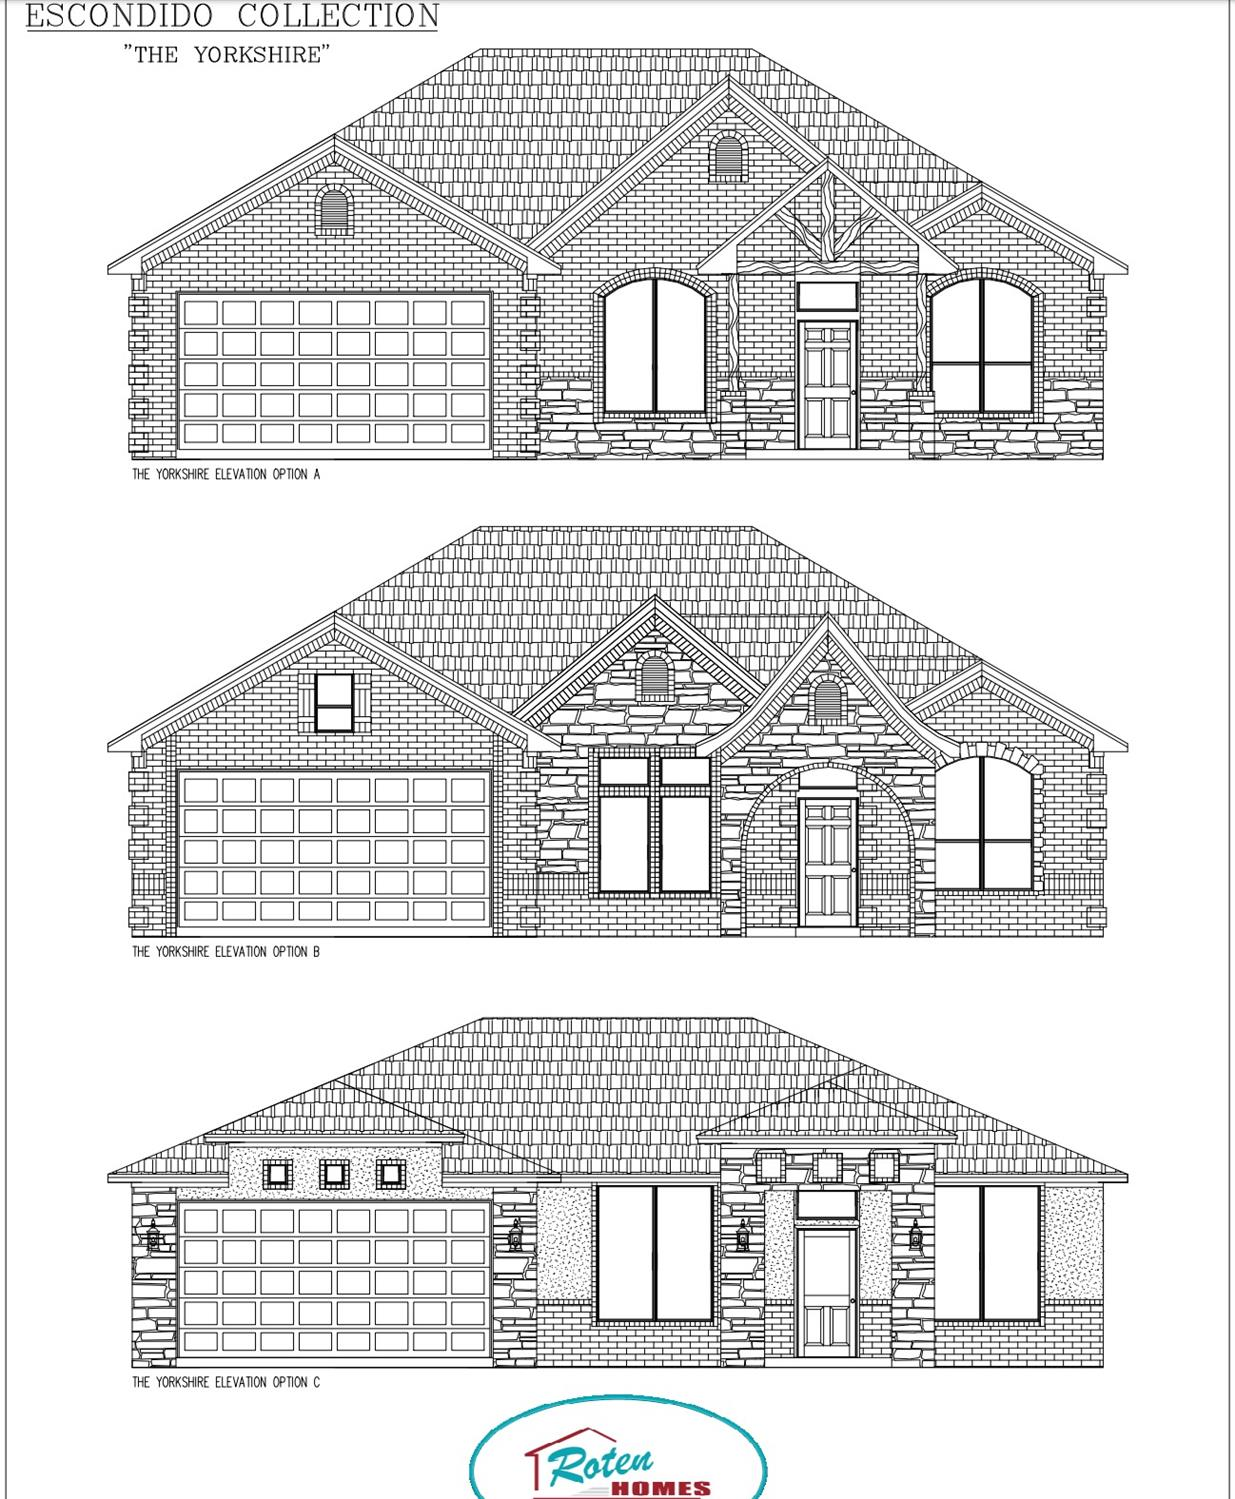 Roten Home new construction 4 bedroom (1 guest suit), 2 bathroom, and 2-car garage home in Day Estates neighborhood. Built for comfort and style, this beautiful brick and stone home has an open concept with 10' ceilings throughout entire house, and large entertaining kitchen island, walk in pantry and double oven. Located in Frienship ISD, making it a great location! Special features include: electric fireplace, granite countertops throughout, mosaic tile kitchen backsplash, apron front kitchen sink, under cabinet kitchen lights, his & her walk-in closet in master bedroom, a jet tub in master bath, isolated guest suit, and vinyl plank flooring everywhere except bedrooms & closets.